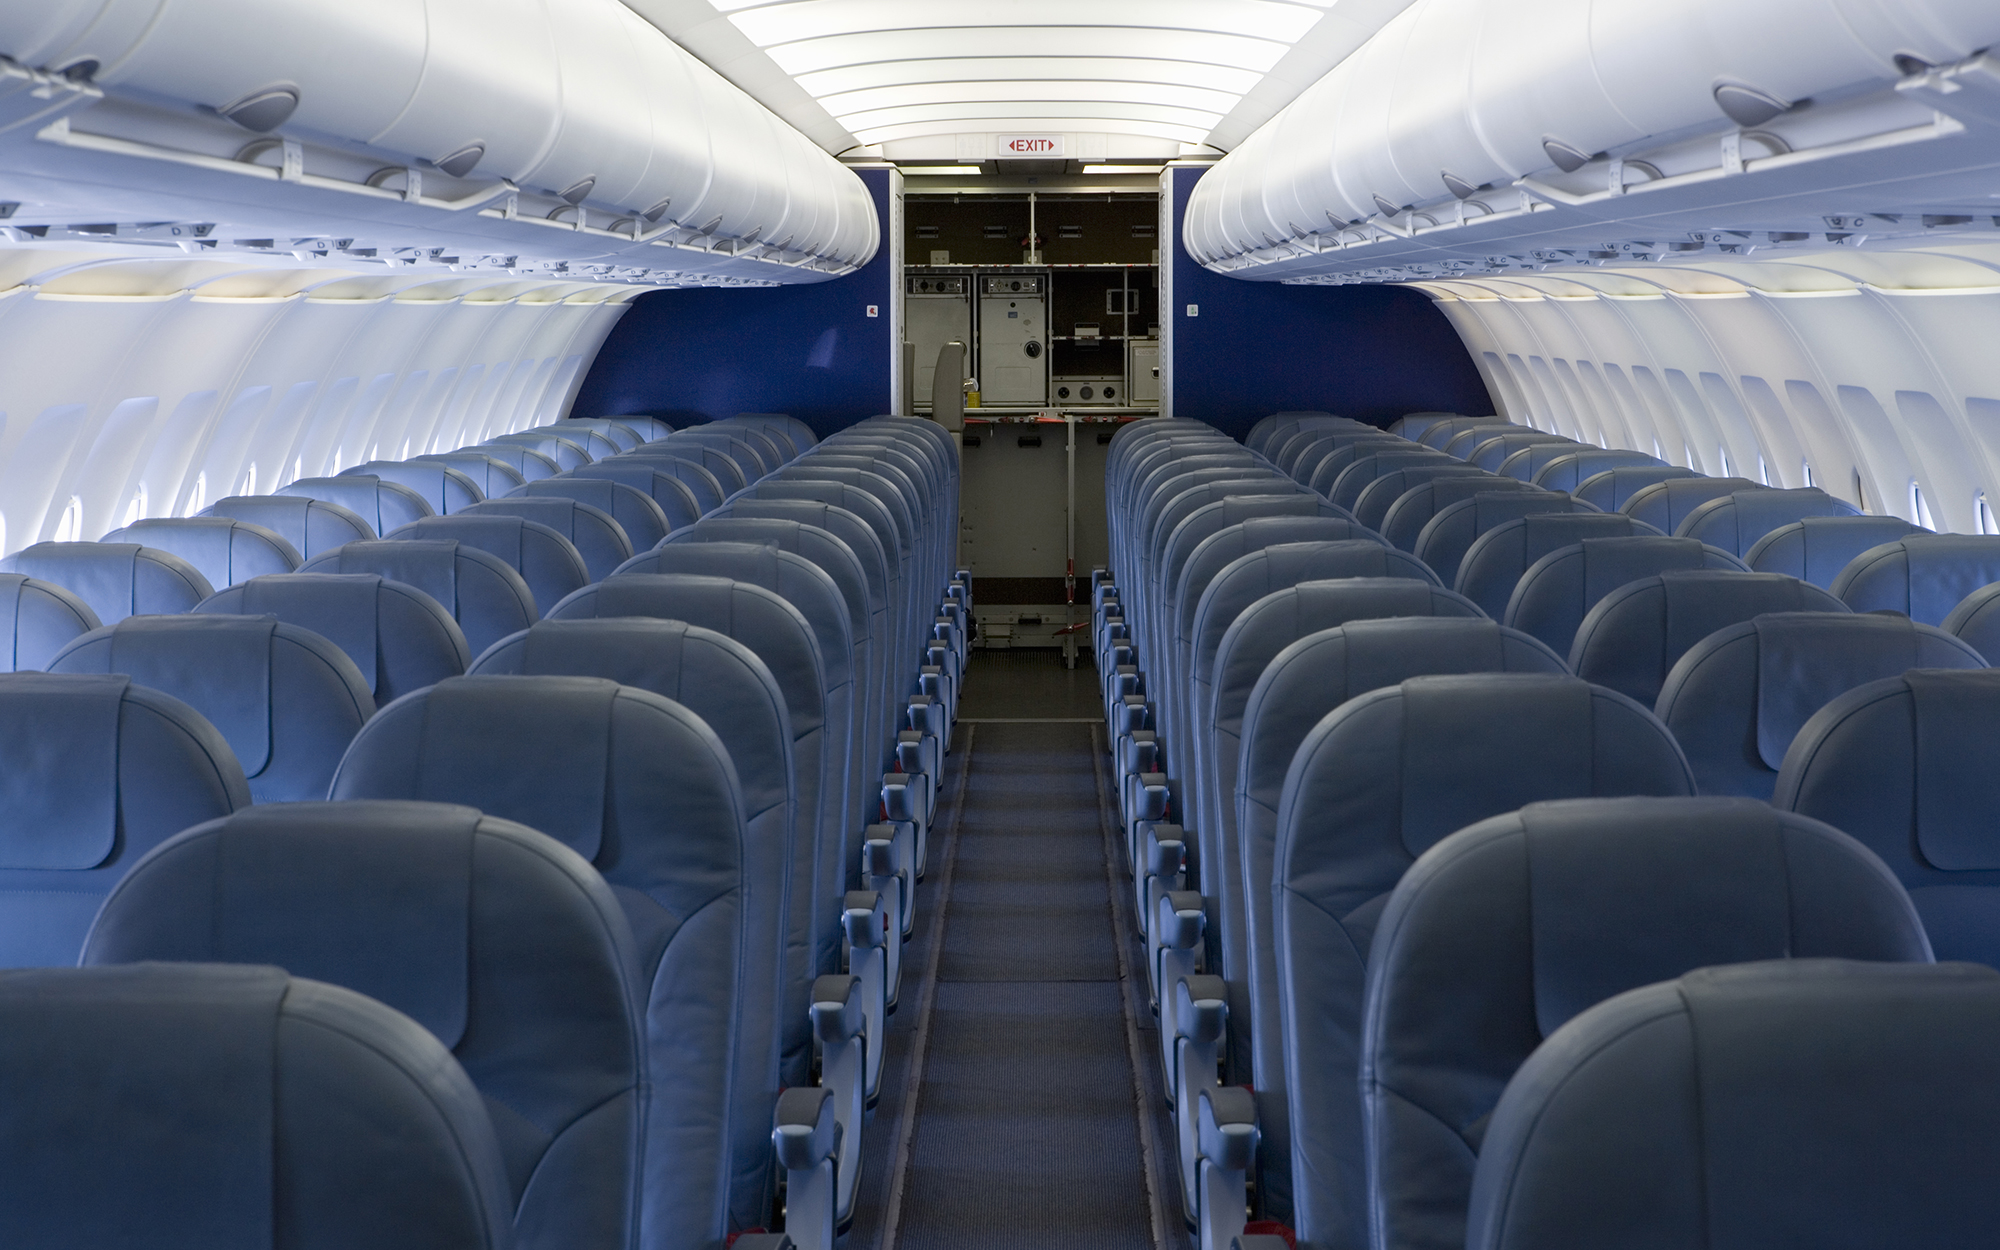 There's a New Airline Seating Class Even Worse Than Economy